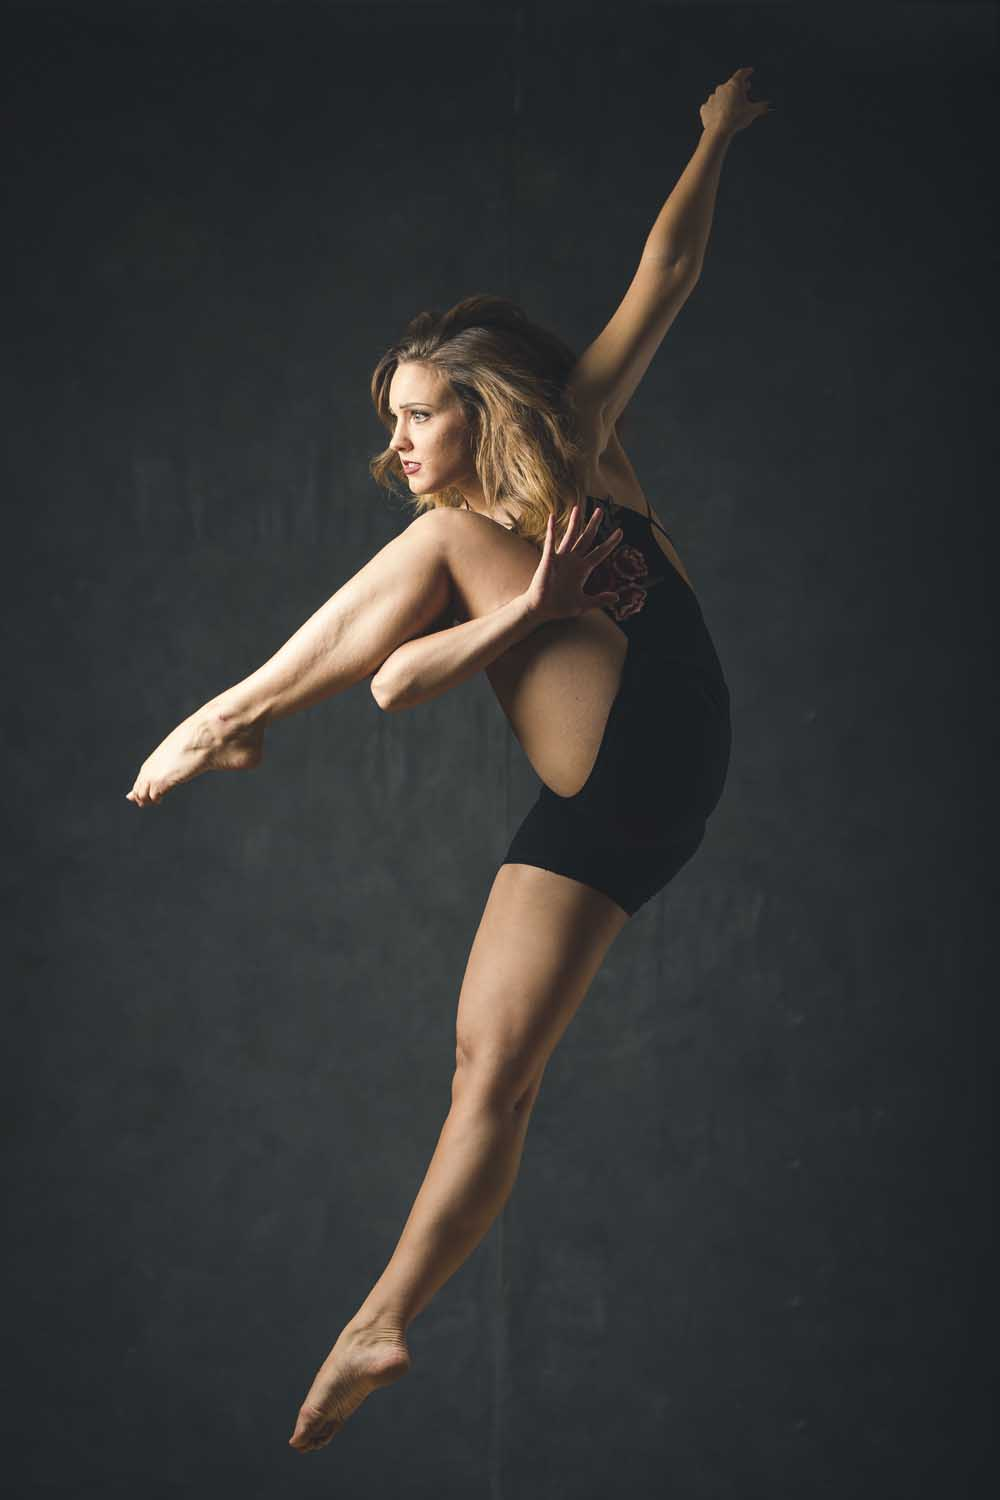 NYC Dance Photographer